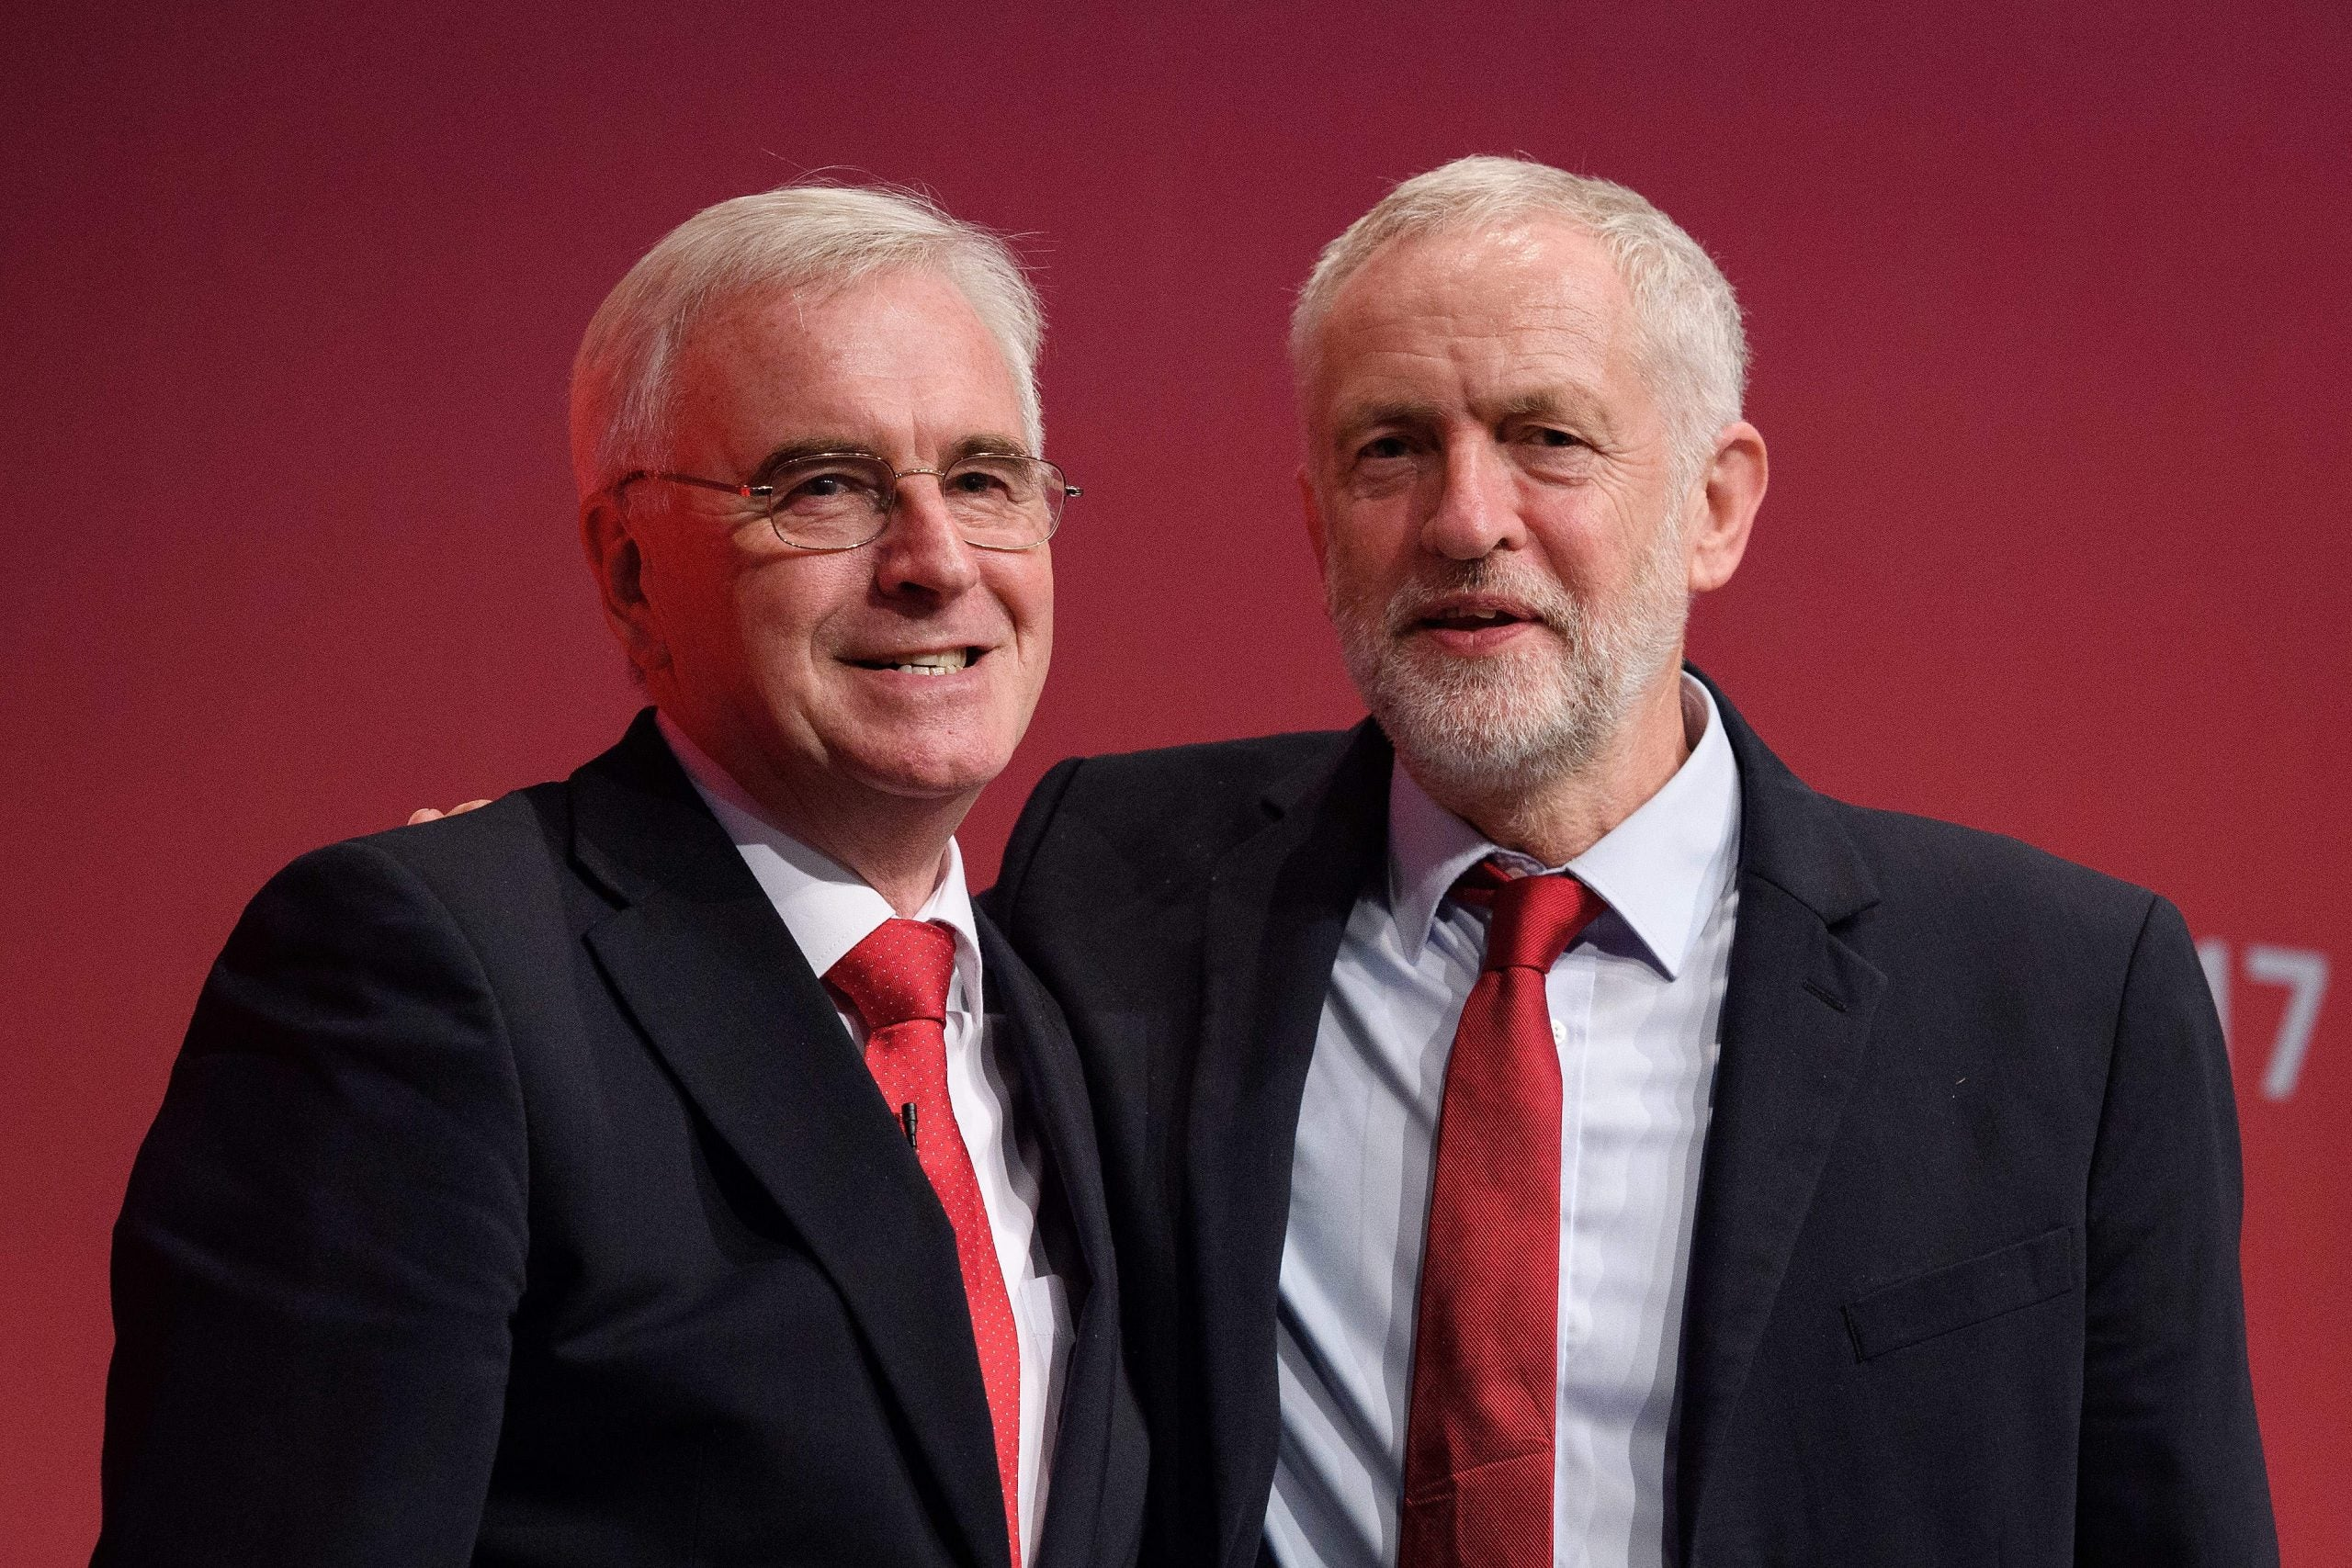 Is McDonnell and Corbyn's disagreement the beginning of a Blair and Brown-style split?